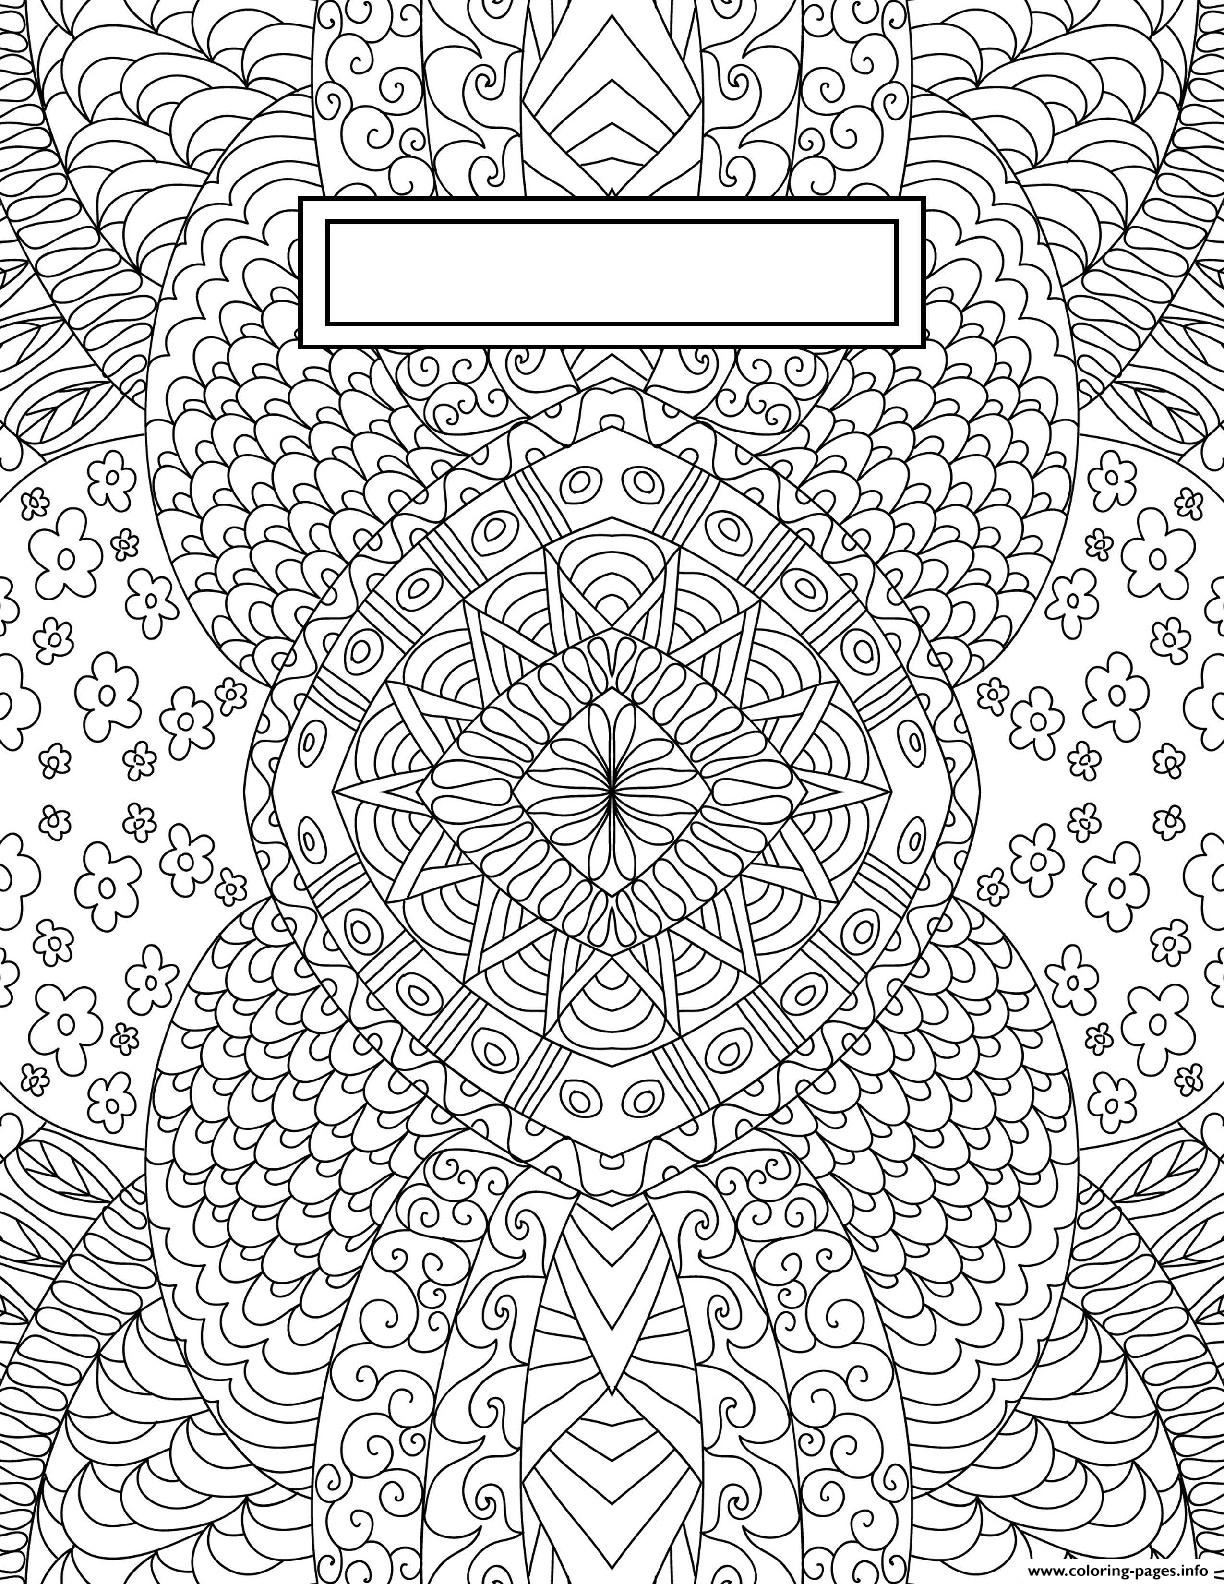 Binder cover adult relaxing coloring pages printable, pokemon coloring pages